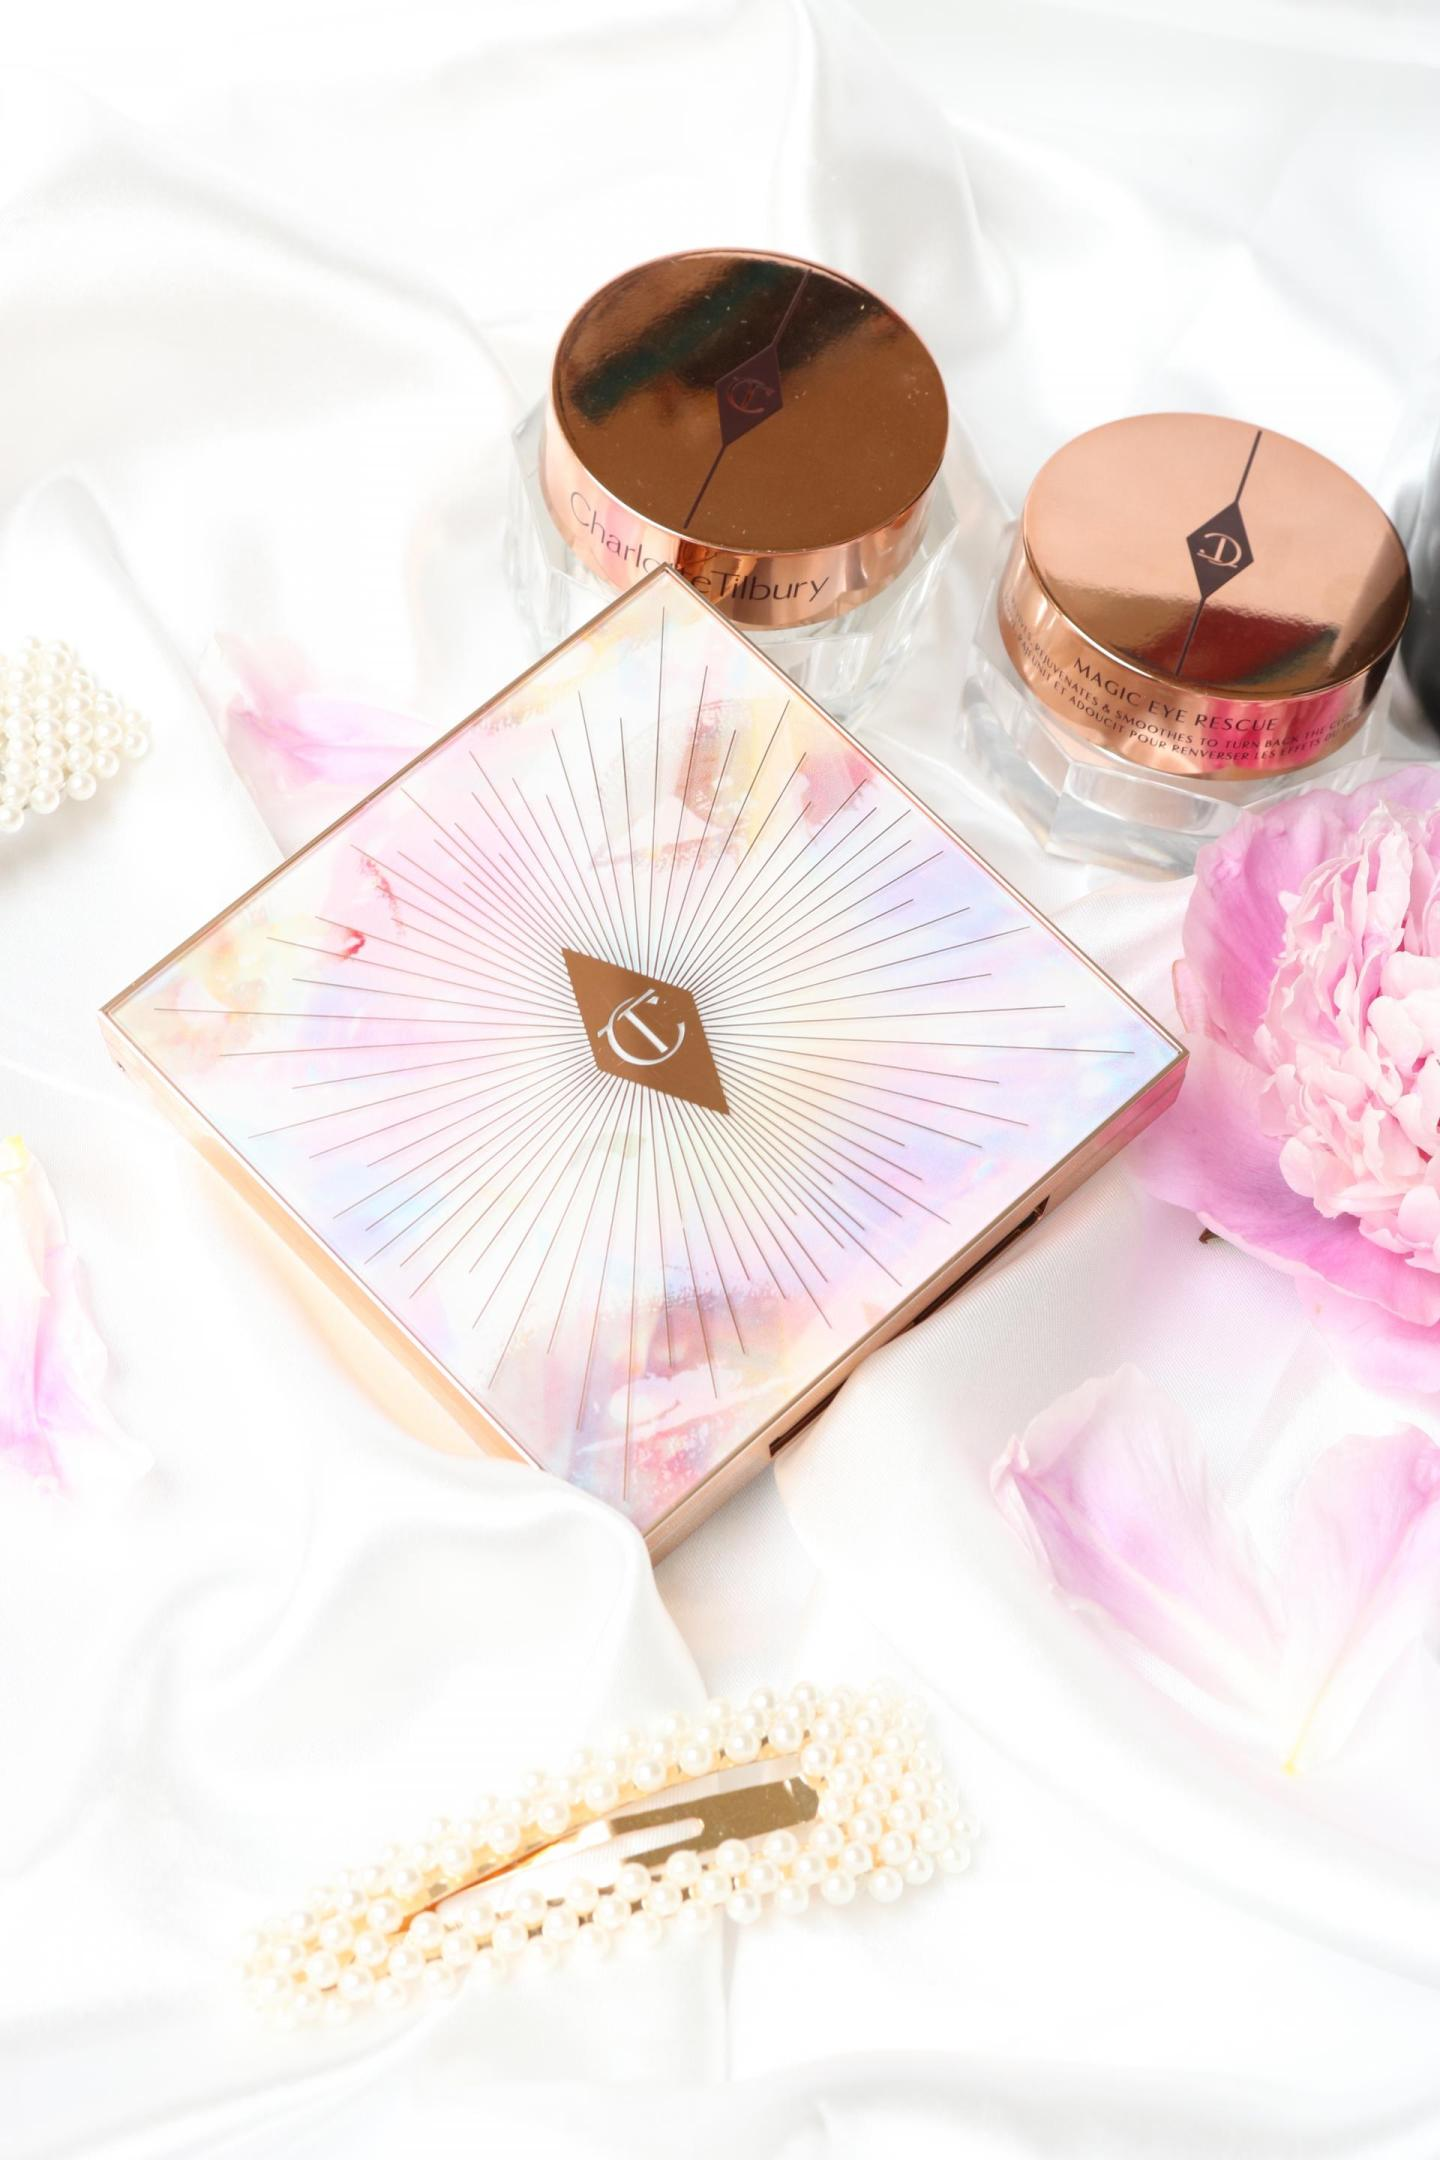 Charlotte Tilbury Glowgasm Face Palette close up